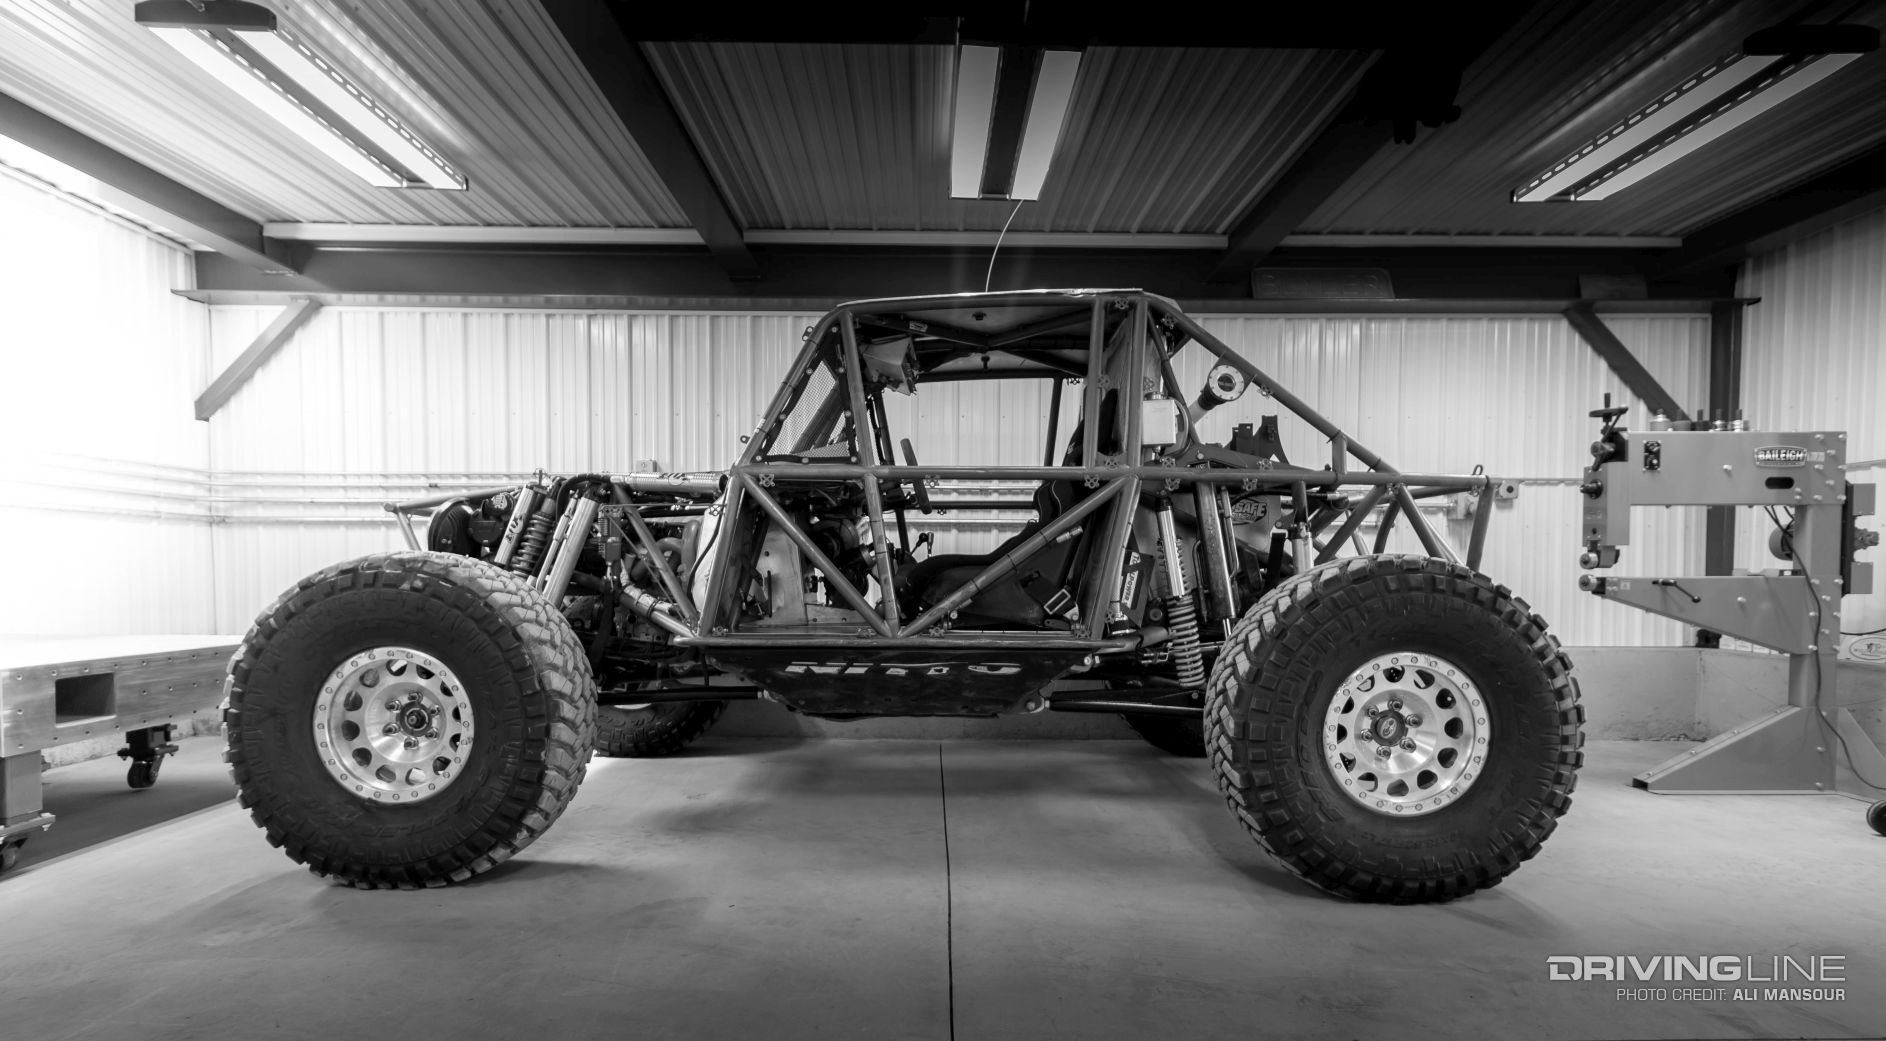 Erik Miller S 2016 King Of The Hammers Winning Car The